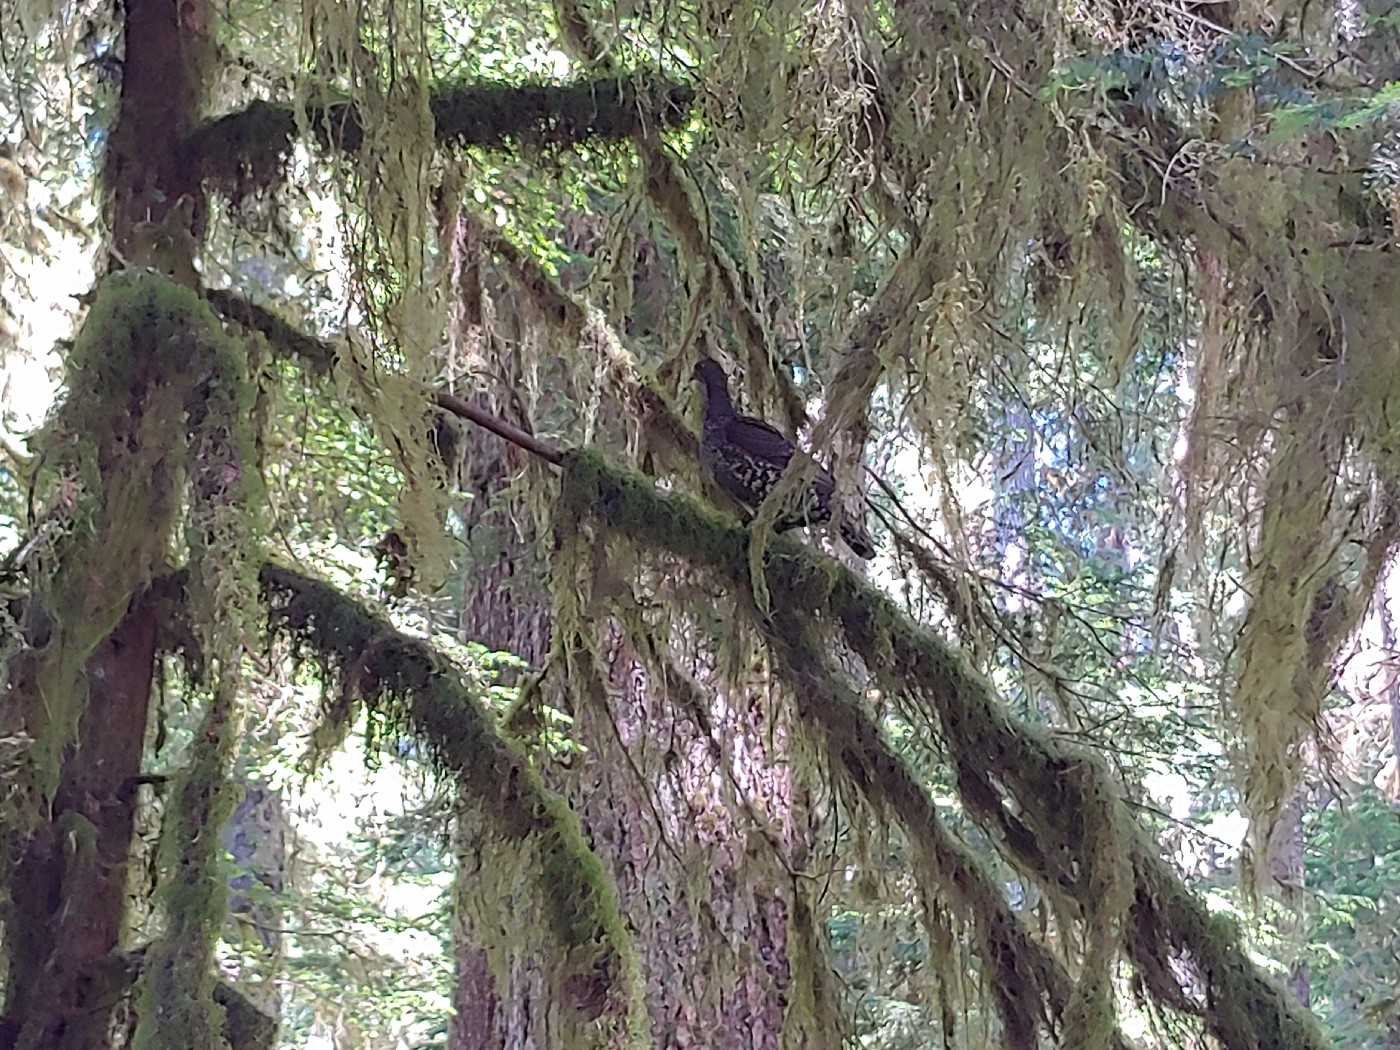 A forest grouse perches on a moss-draped tree branch in the Sol Duc River Valley.